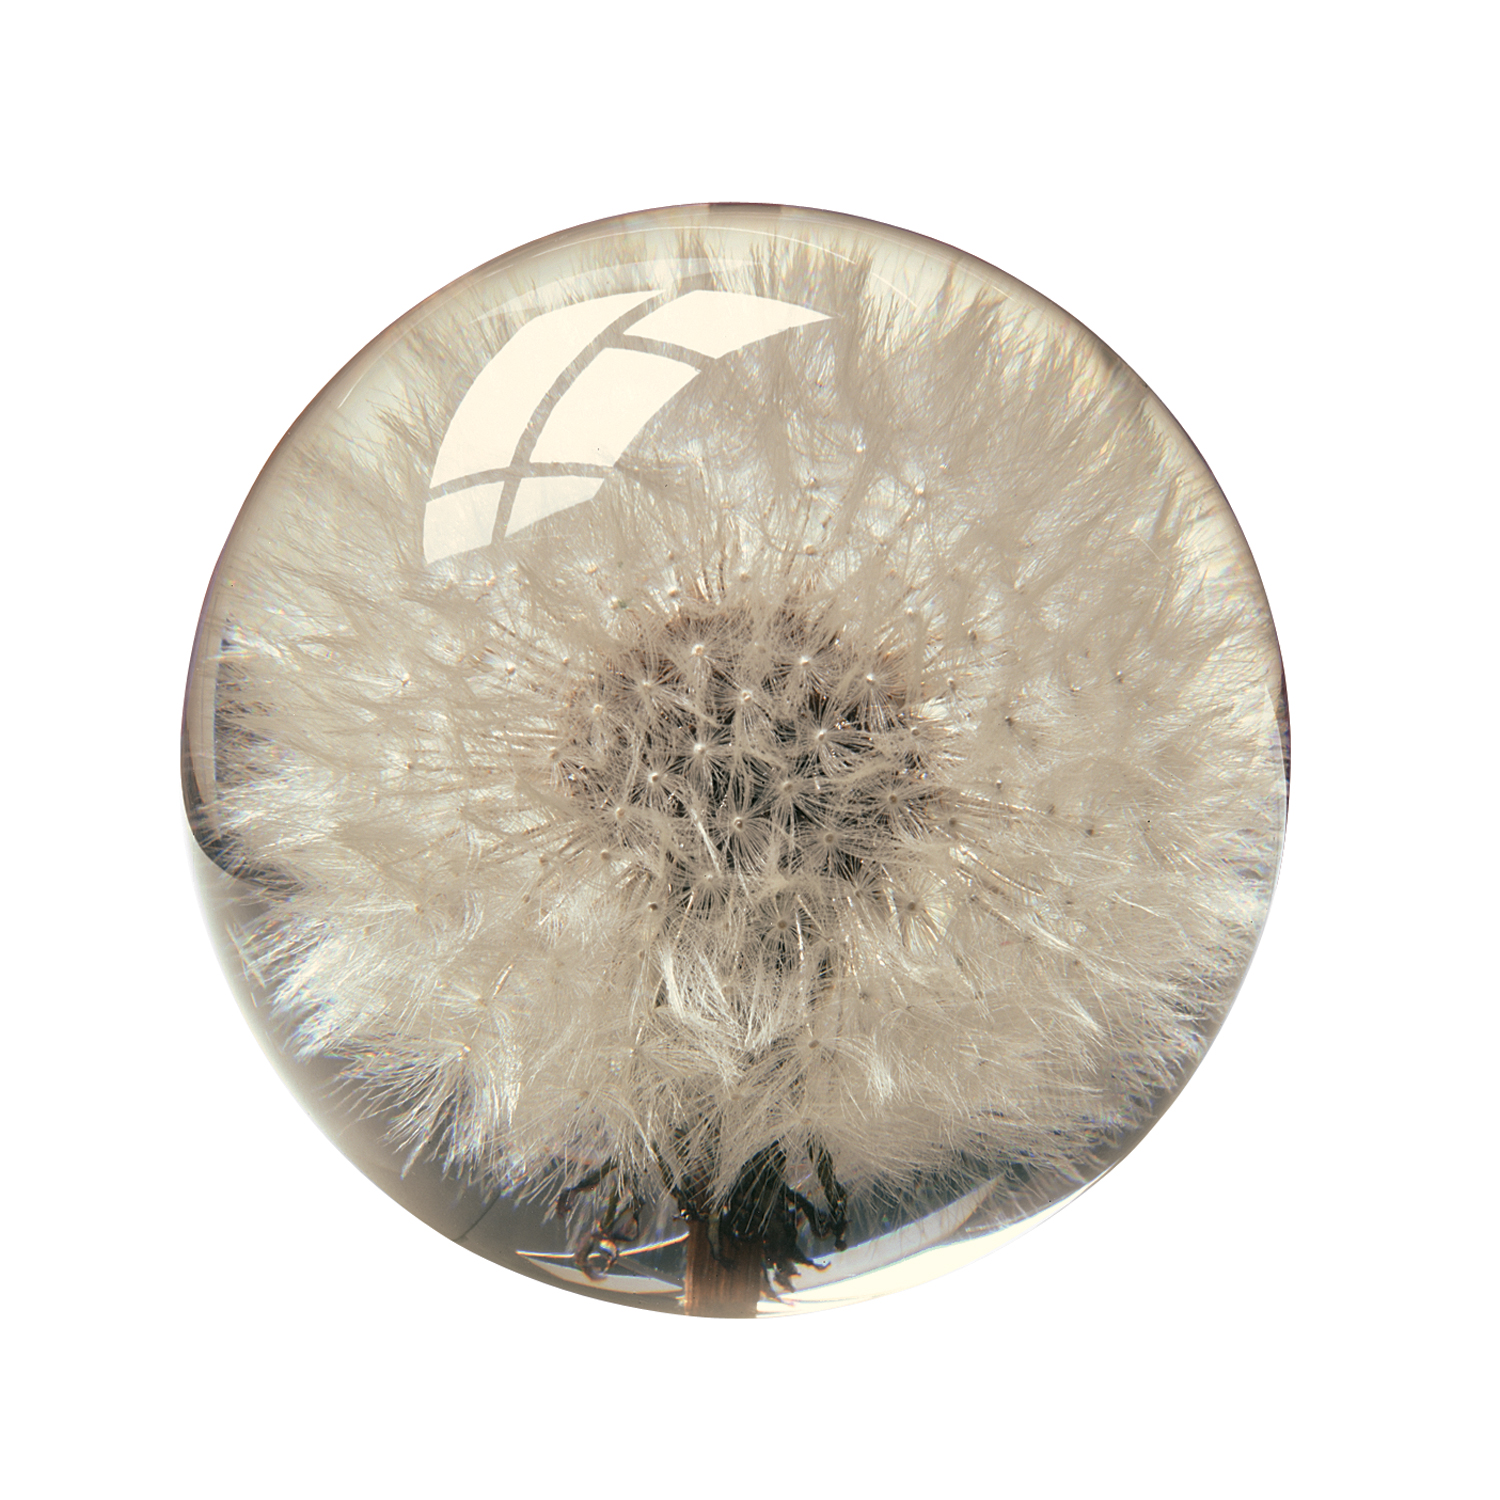 Dandelion Paperweight - Crystal Clear Resin with Dandilion Puff Inside - 2 3/8""